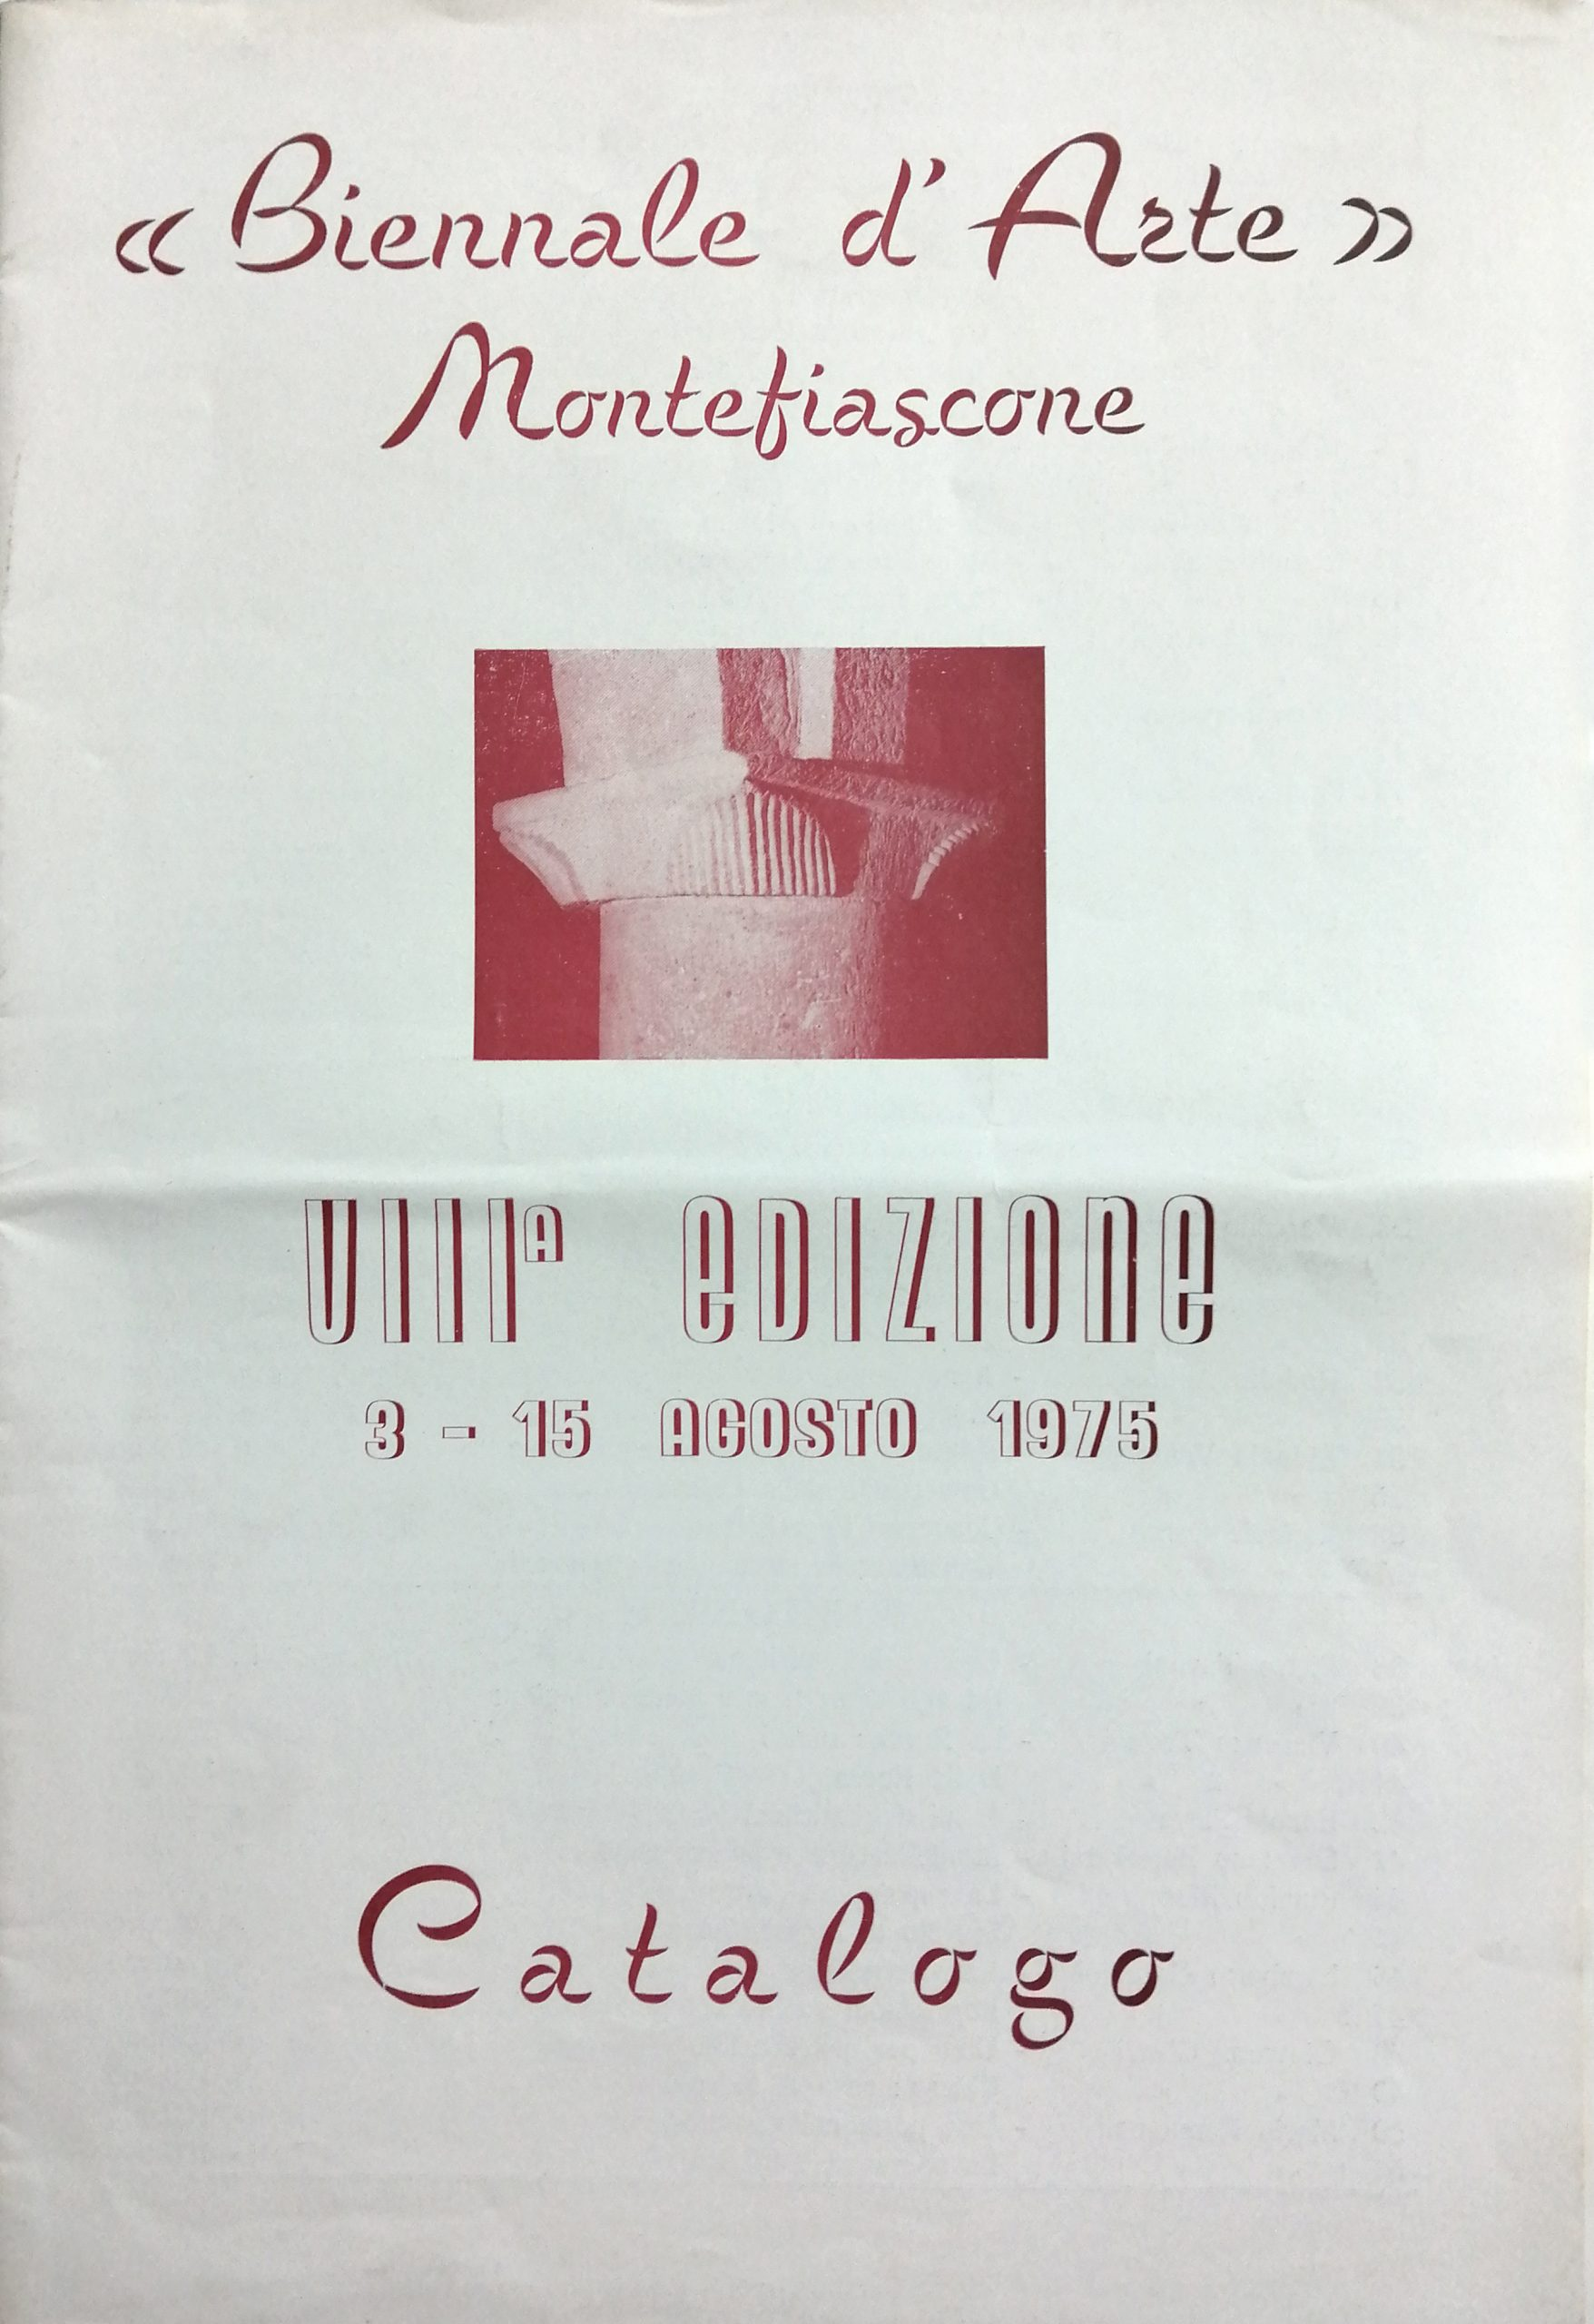 1975 Biennale dArte Montefiascone scaled - Bibliography/ Catalogues